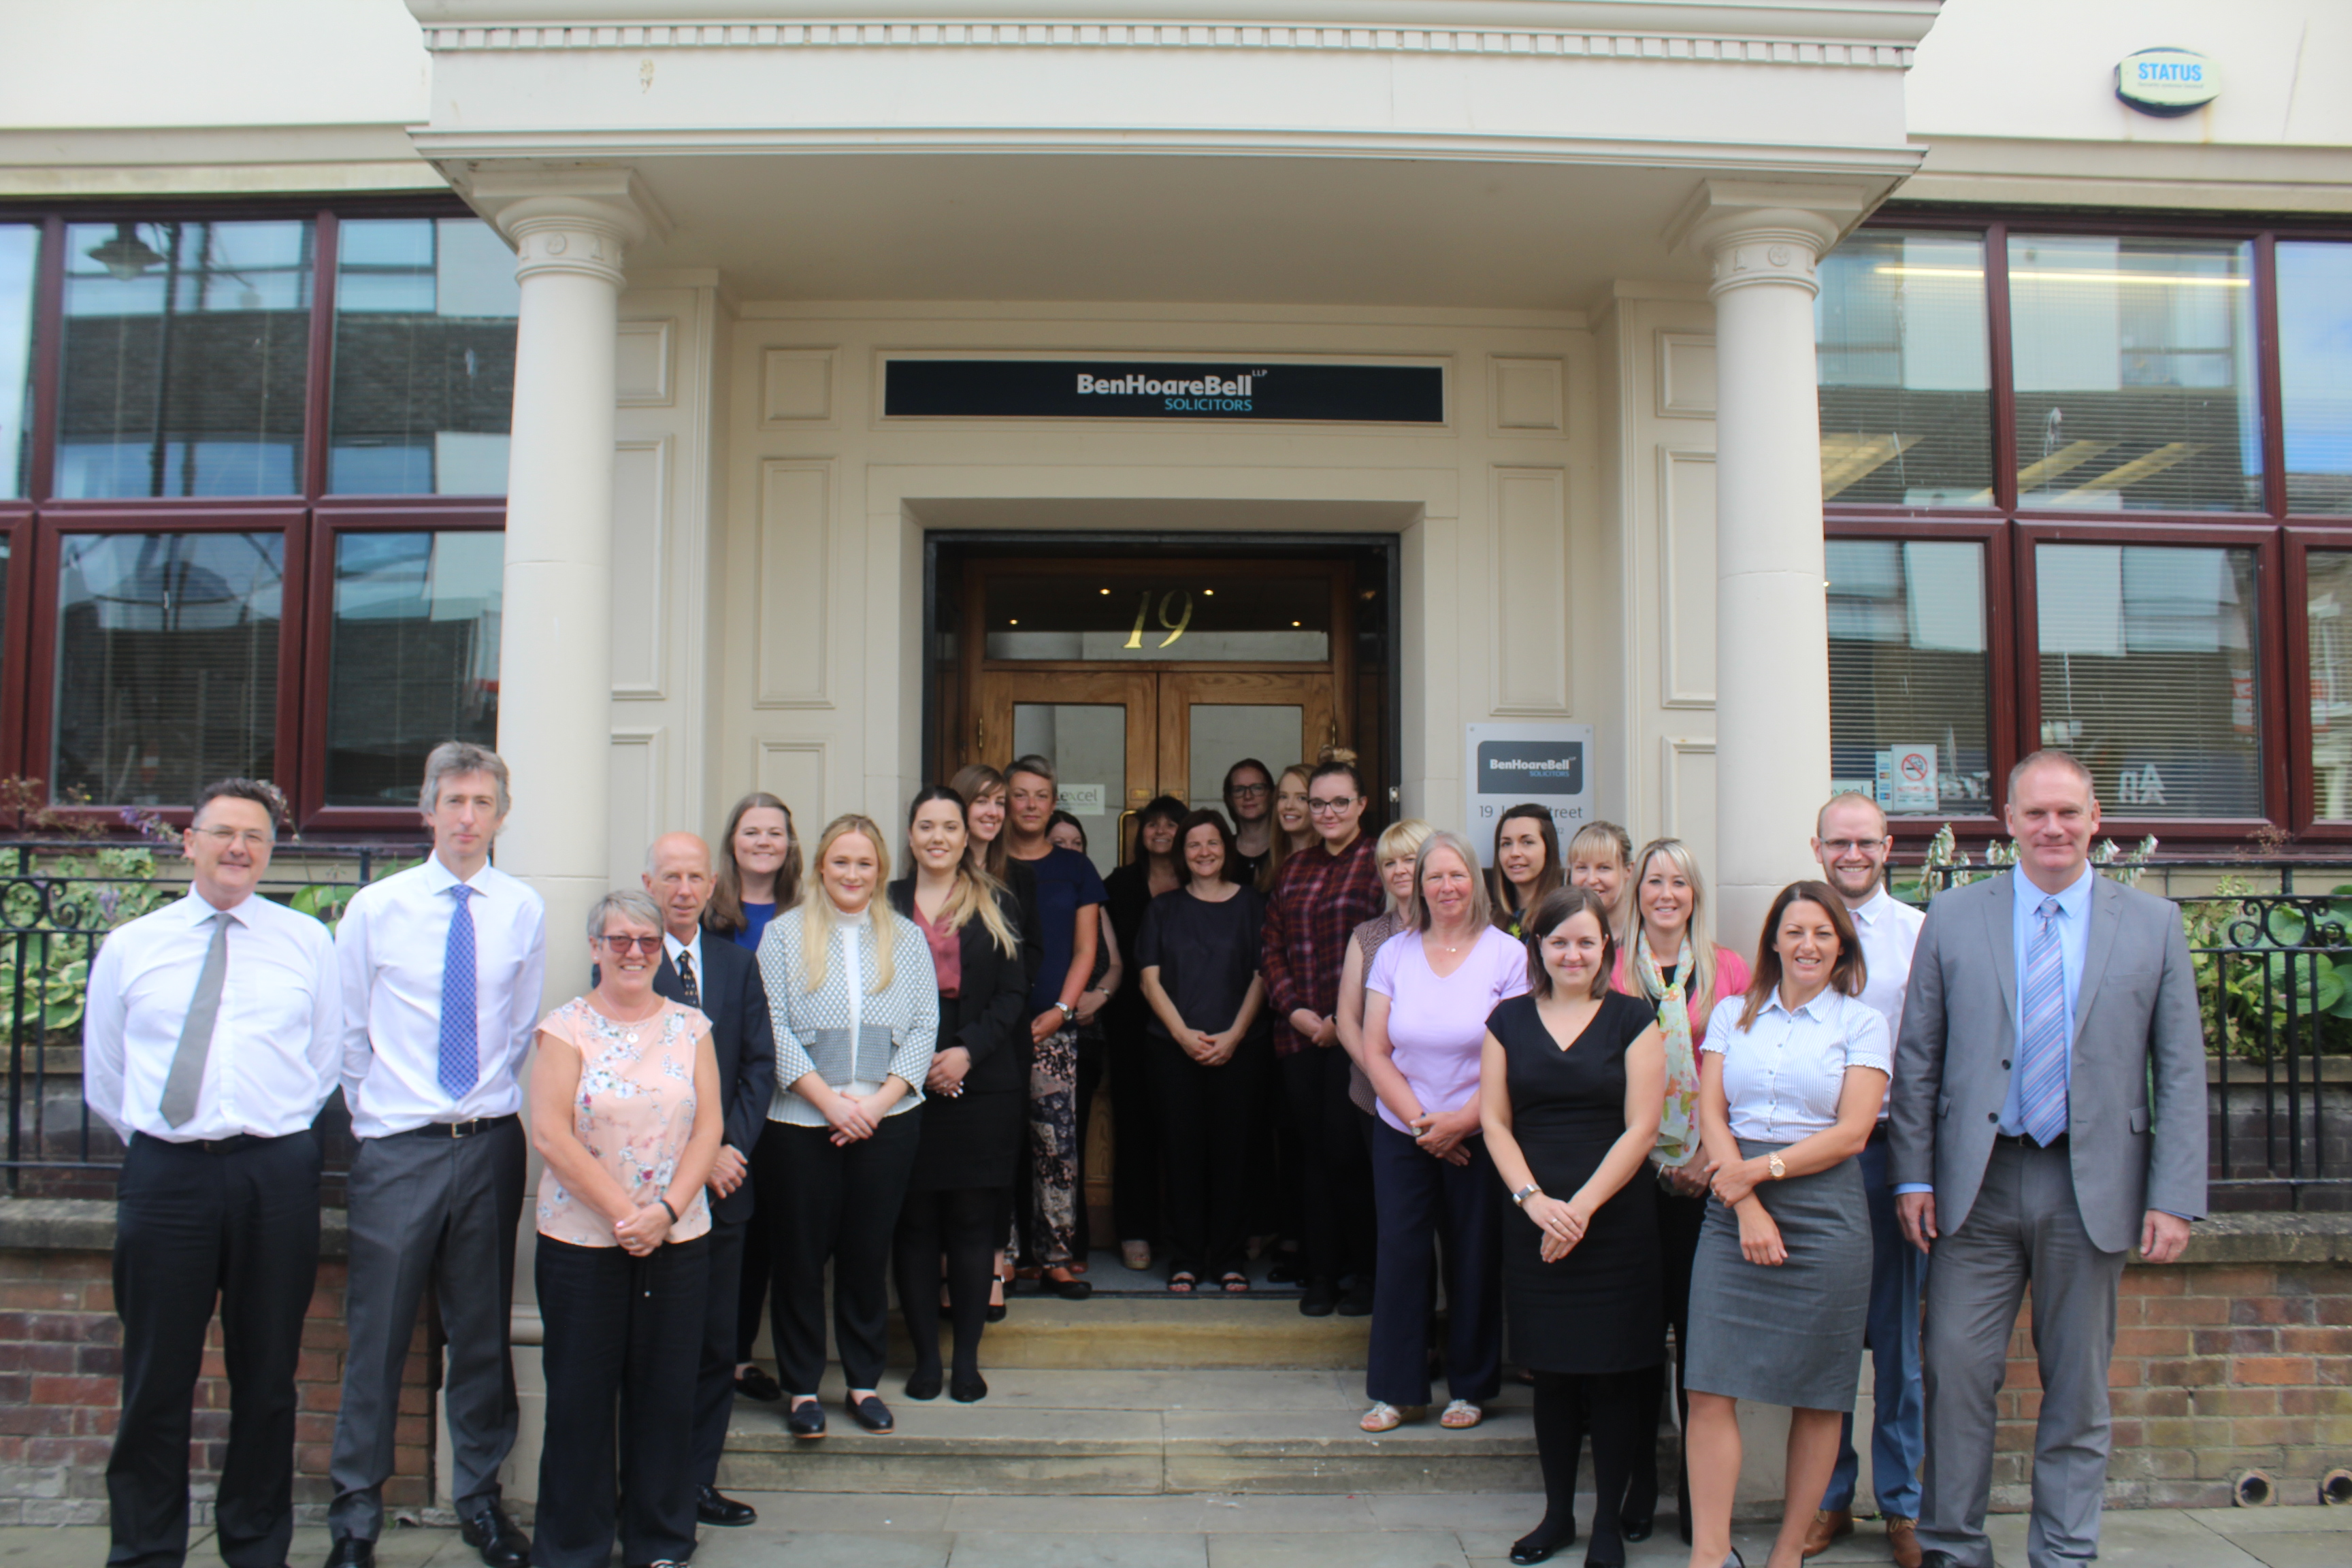 Ben Hoare Bell LLP staff at their new office 19 John Street, Sunderland, SR1 1JQ